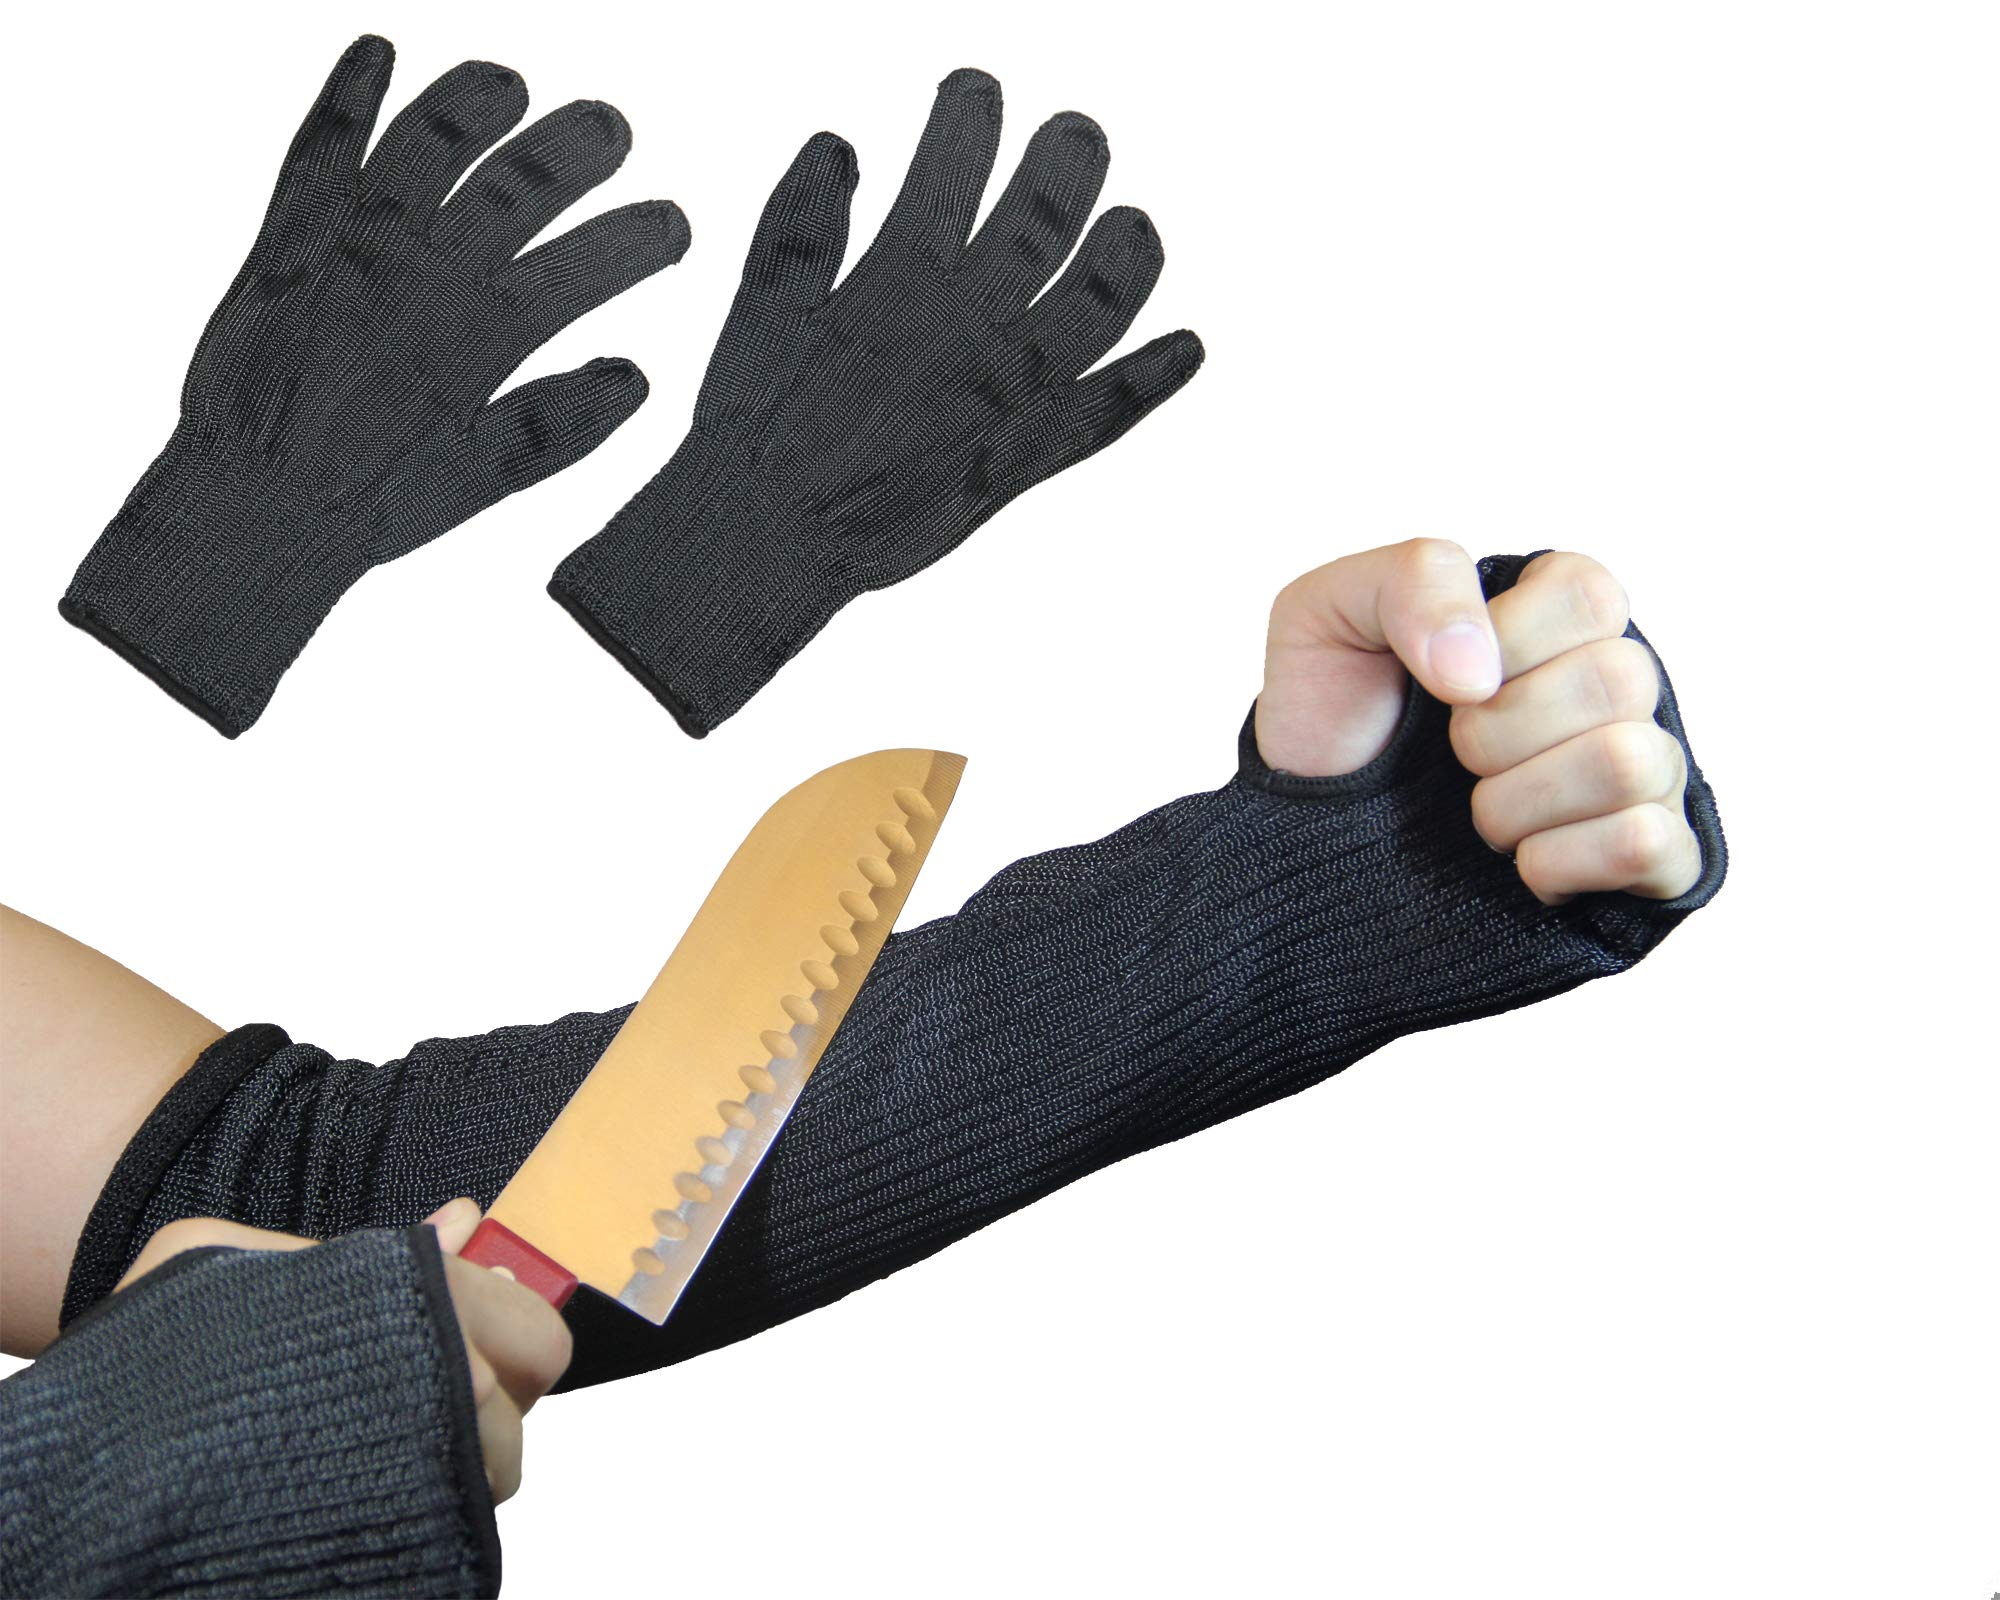 Anti-Cut and Heat Resistant Kevlar Sleeves and Kevlar Gloves (1 Pair Each) Ultimate Safety Work Protection